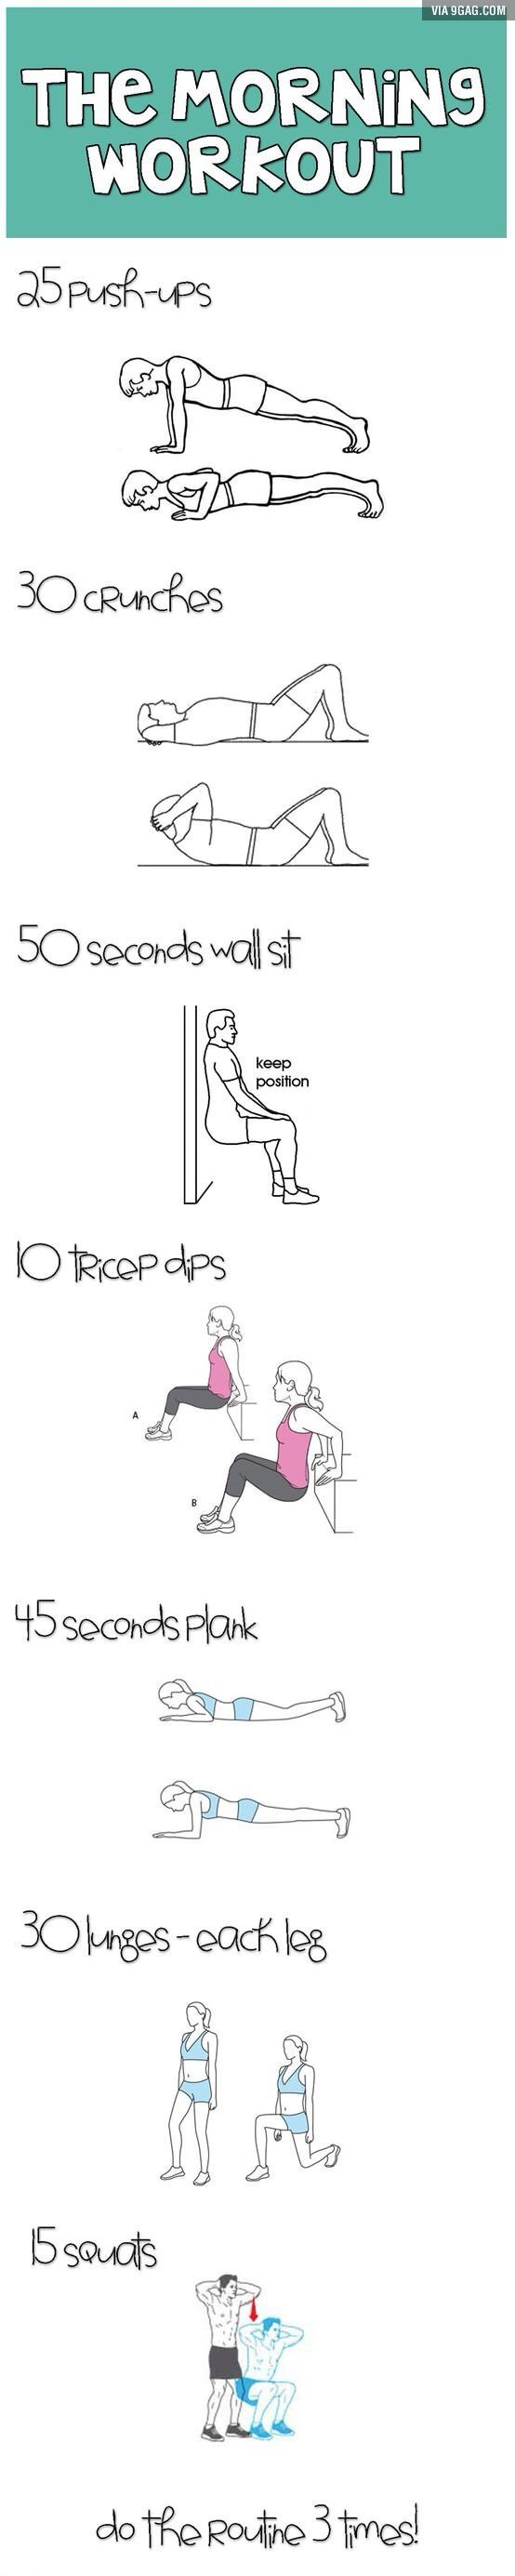 The morning workout! 25 push-ups 30 crunches 50 sec wall sit 10 tricep dips 45 sec plank 30 lunges - each leg 15 squats Repeat 3 times